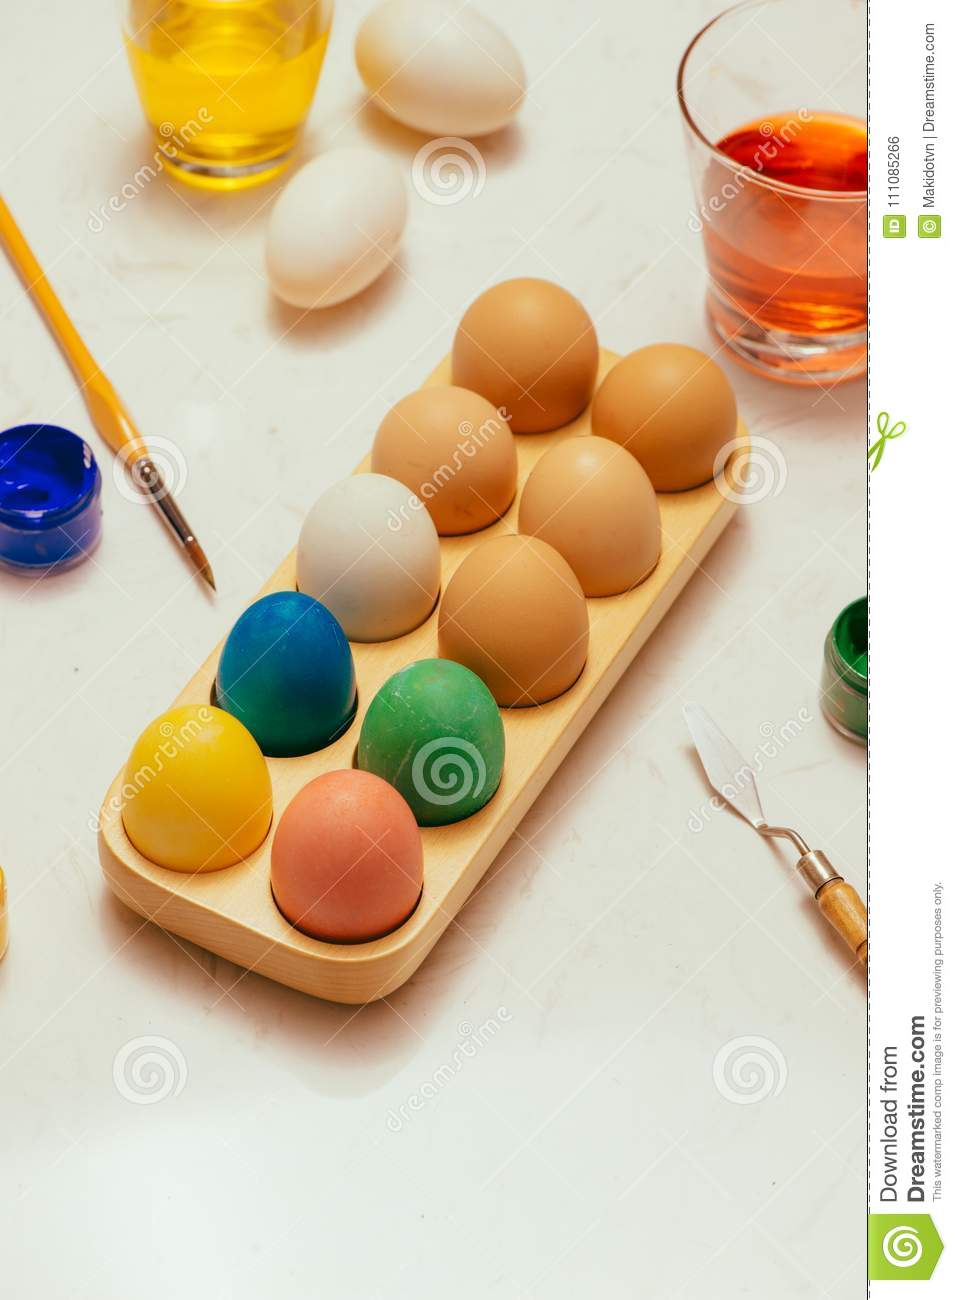 Happy Easter! Friends painting Easter eggs on table.